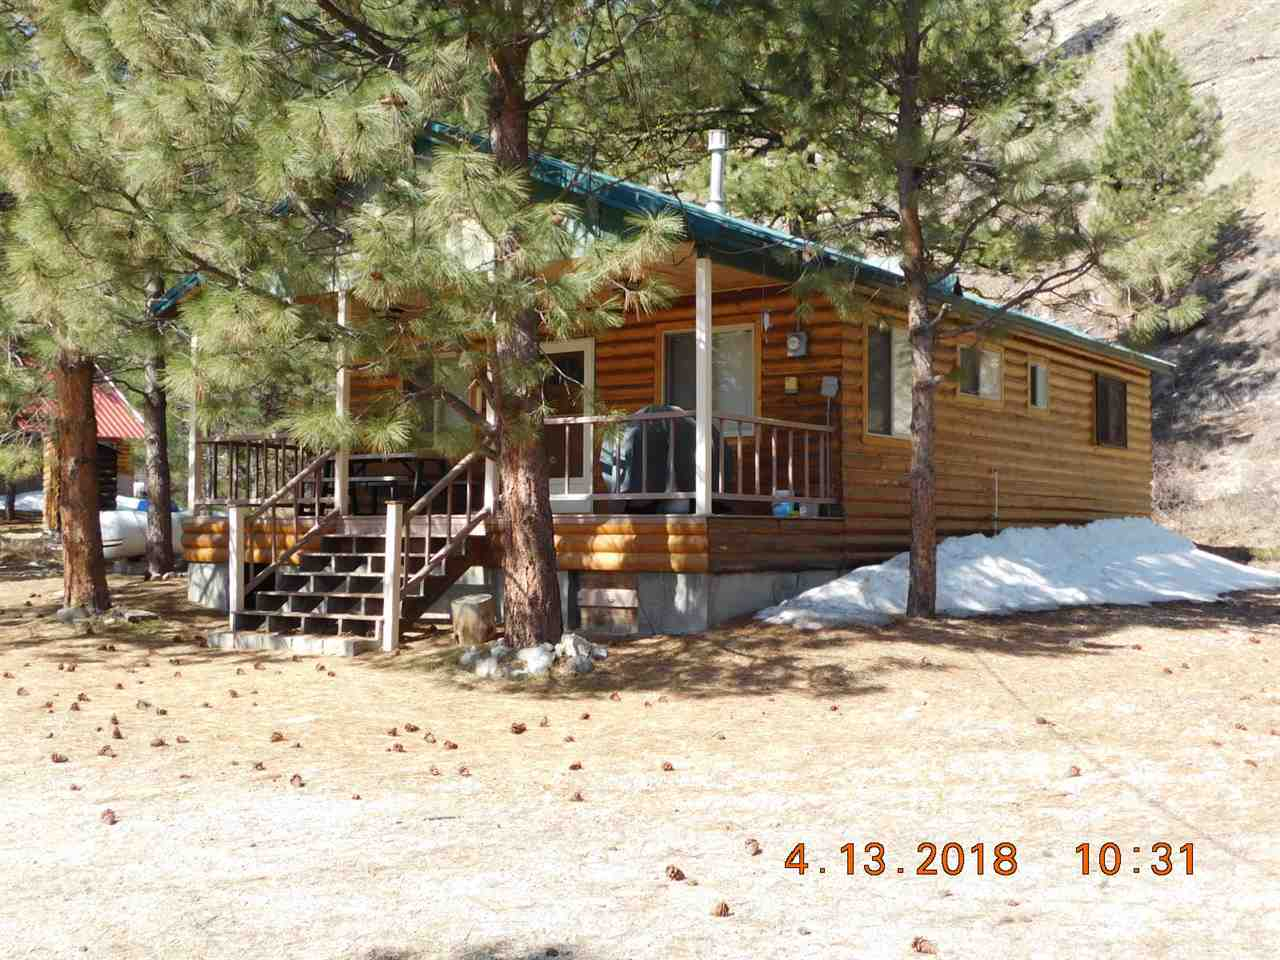 Single Family Home for Sale at 4283 N Pine Featherville Road 4283 N Pine Featherville Road Featherville, Idaho 83647